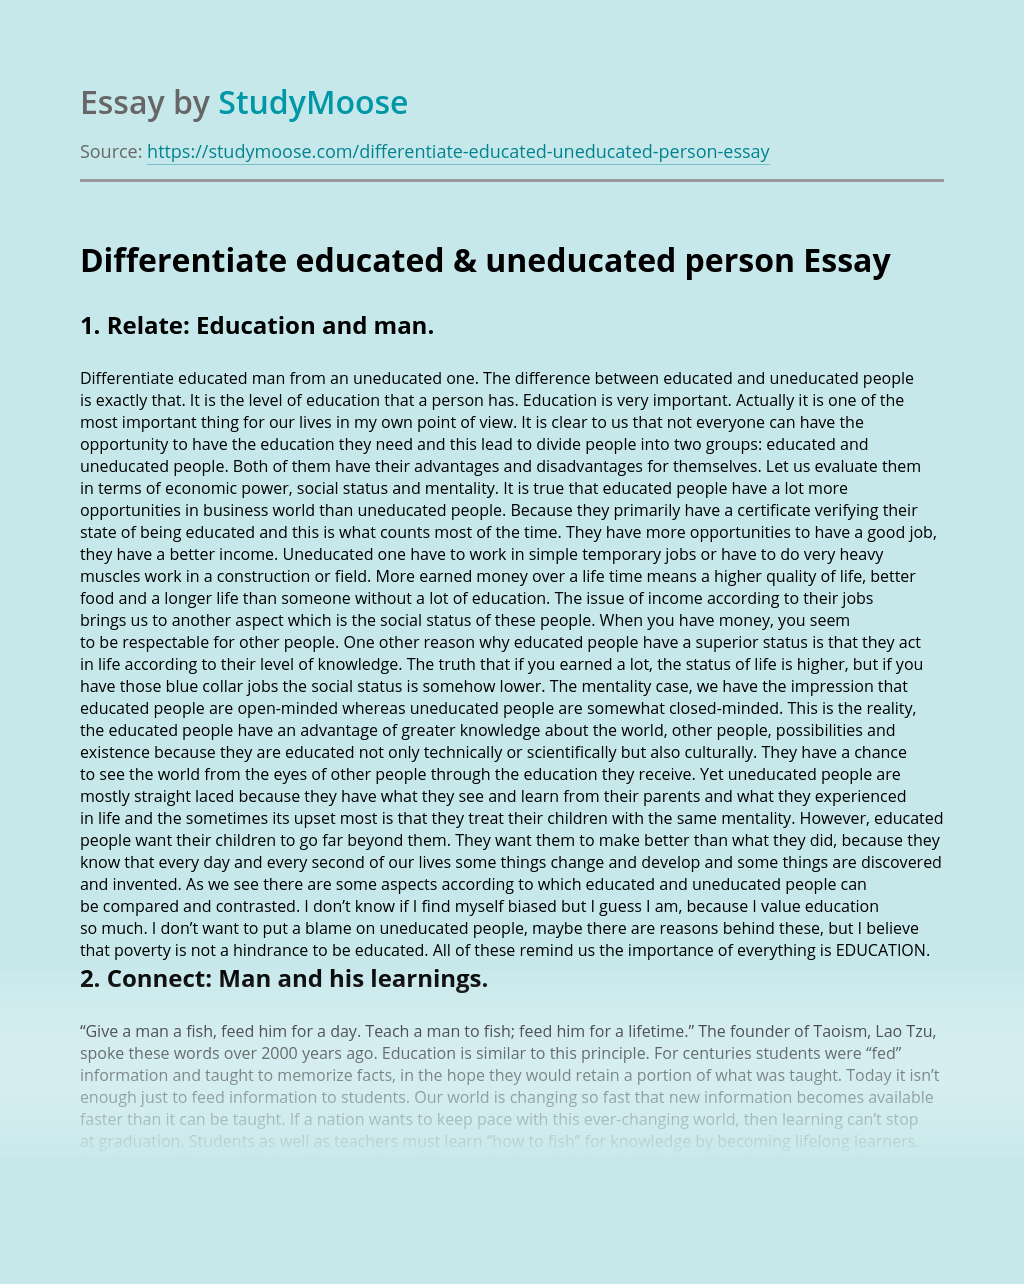 Differentiate Educated & Uneducated Person